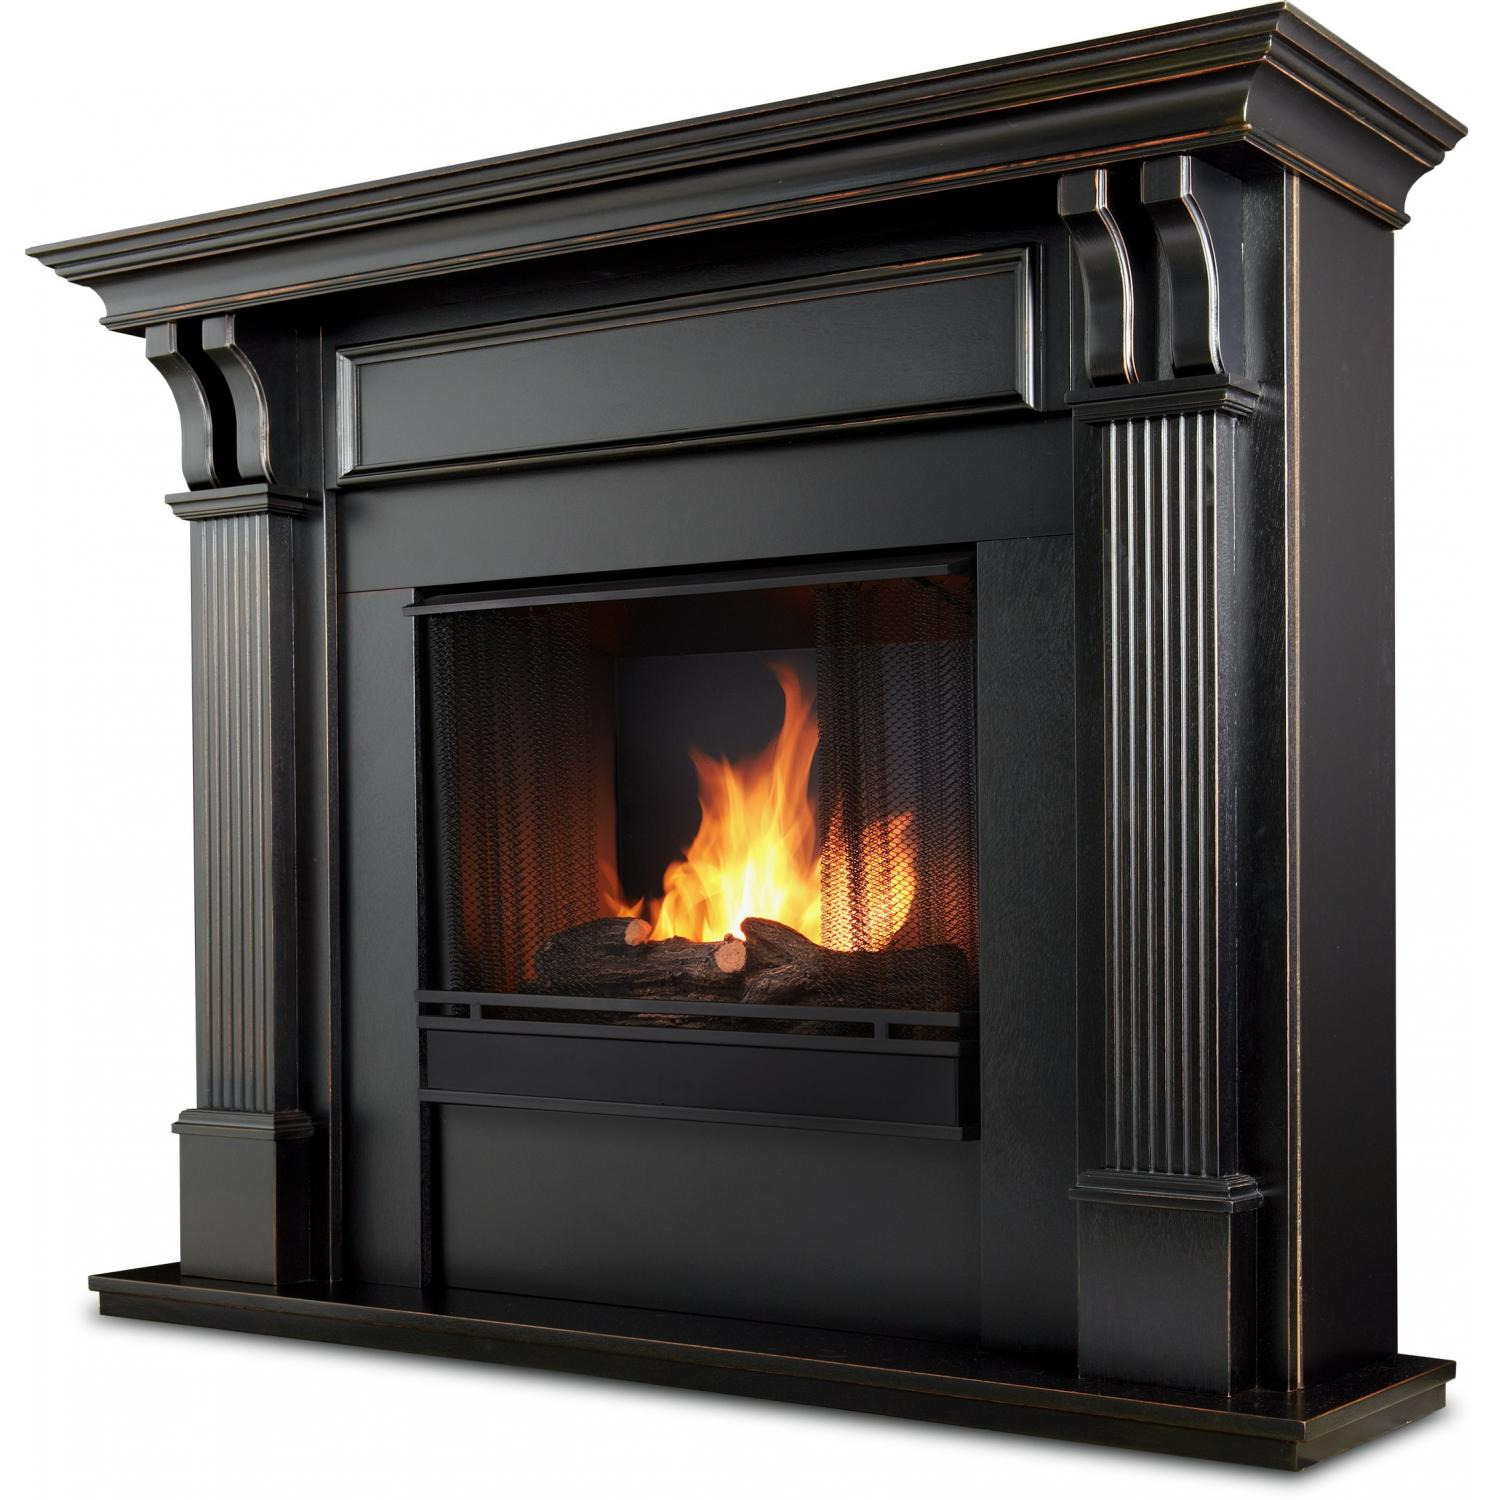 Real Flame Ashley 48-Inch Gel Fireplace - Blackwash